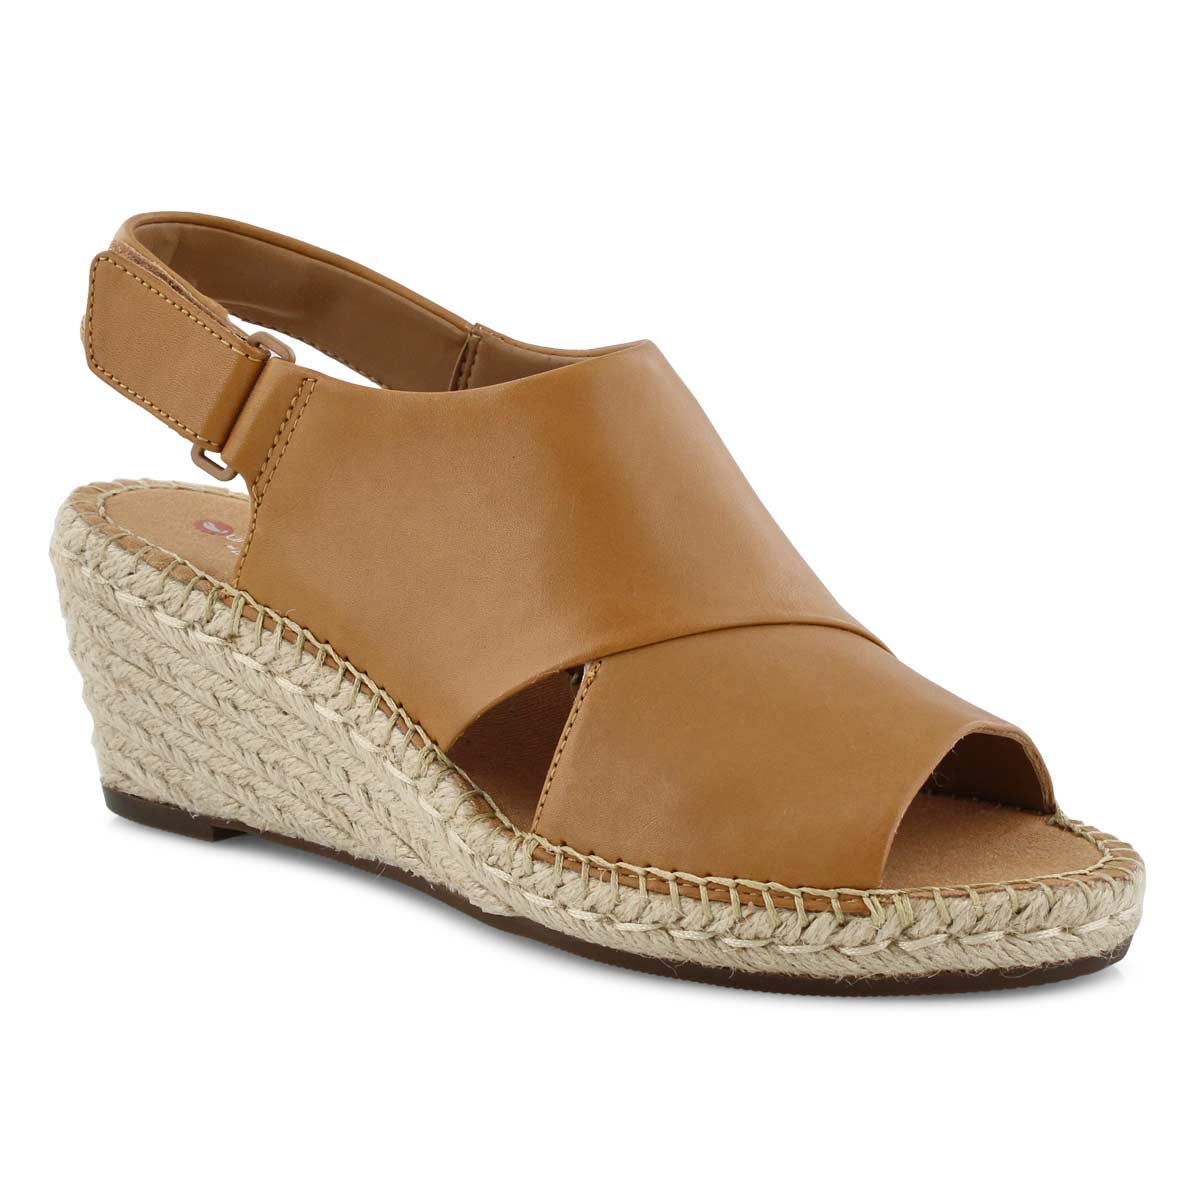 13729e39239 Women's PETRINA ABBY light tan wedge sandals